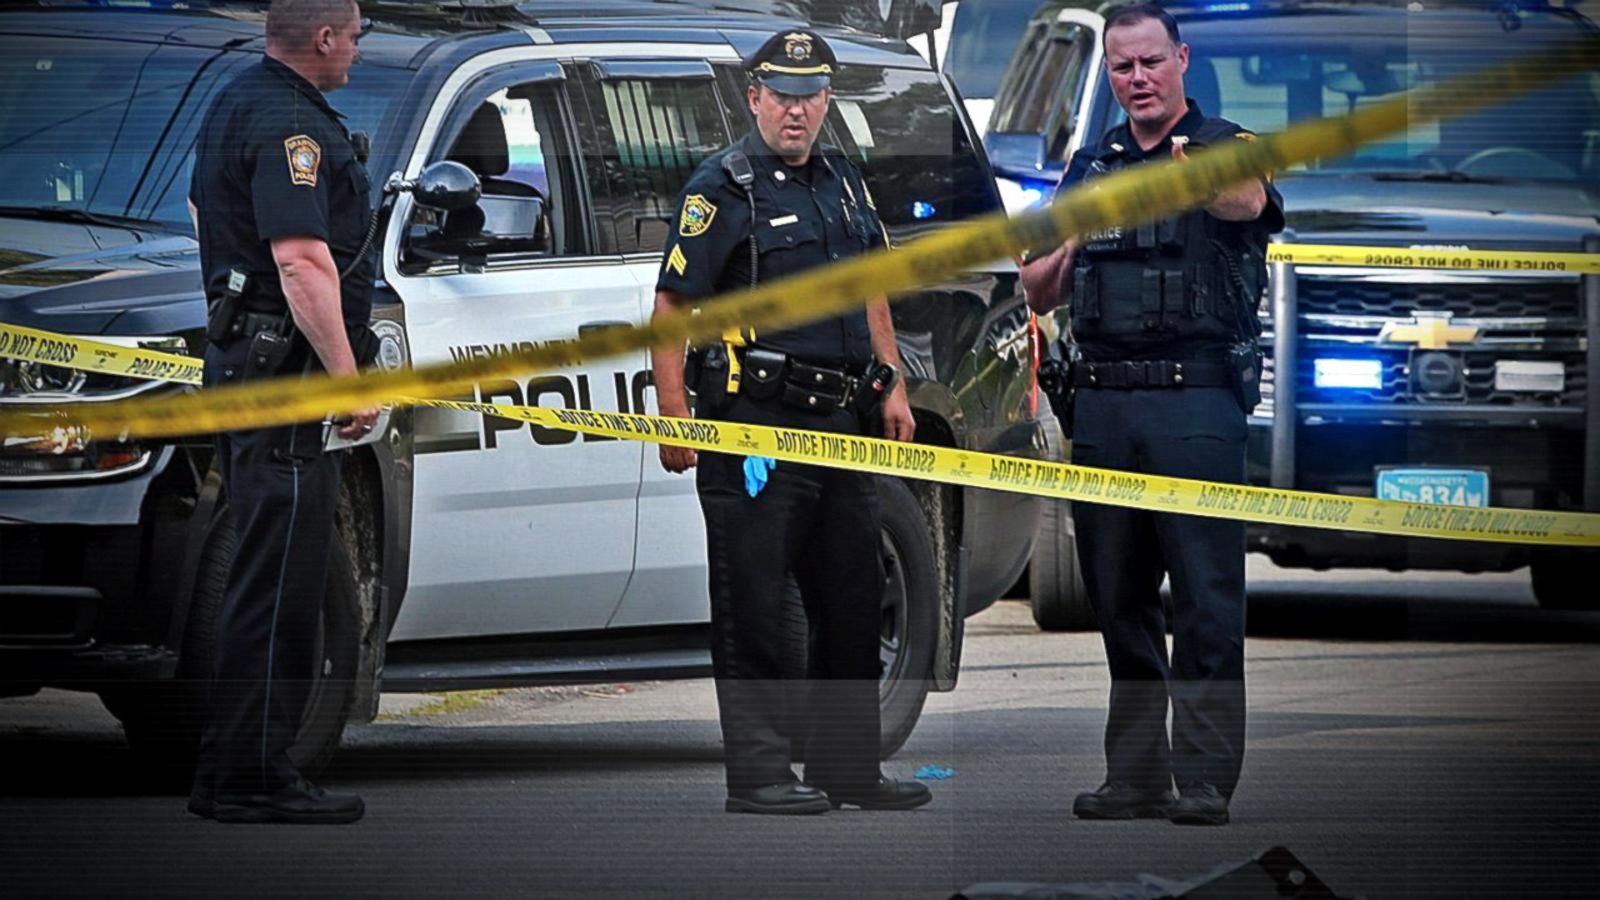 Police Officer Army Veteran Killed By His Own Gun The Day Before